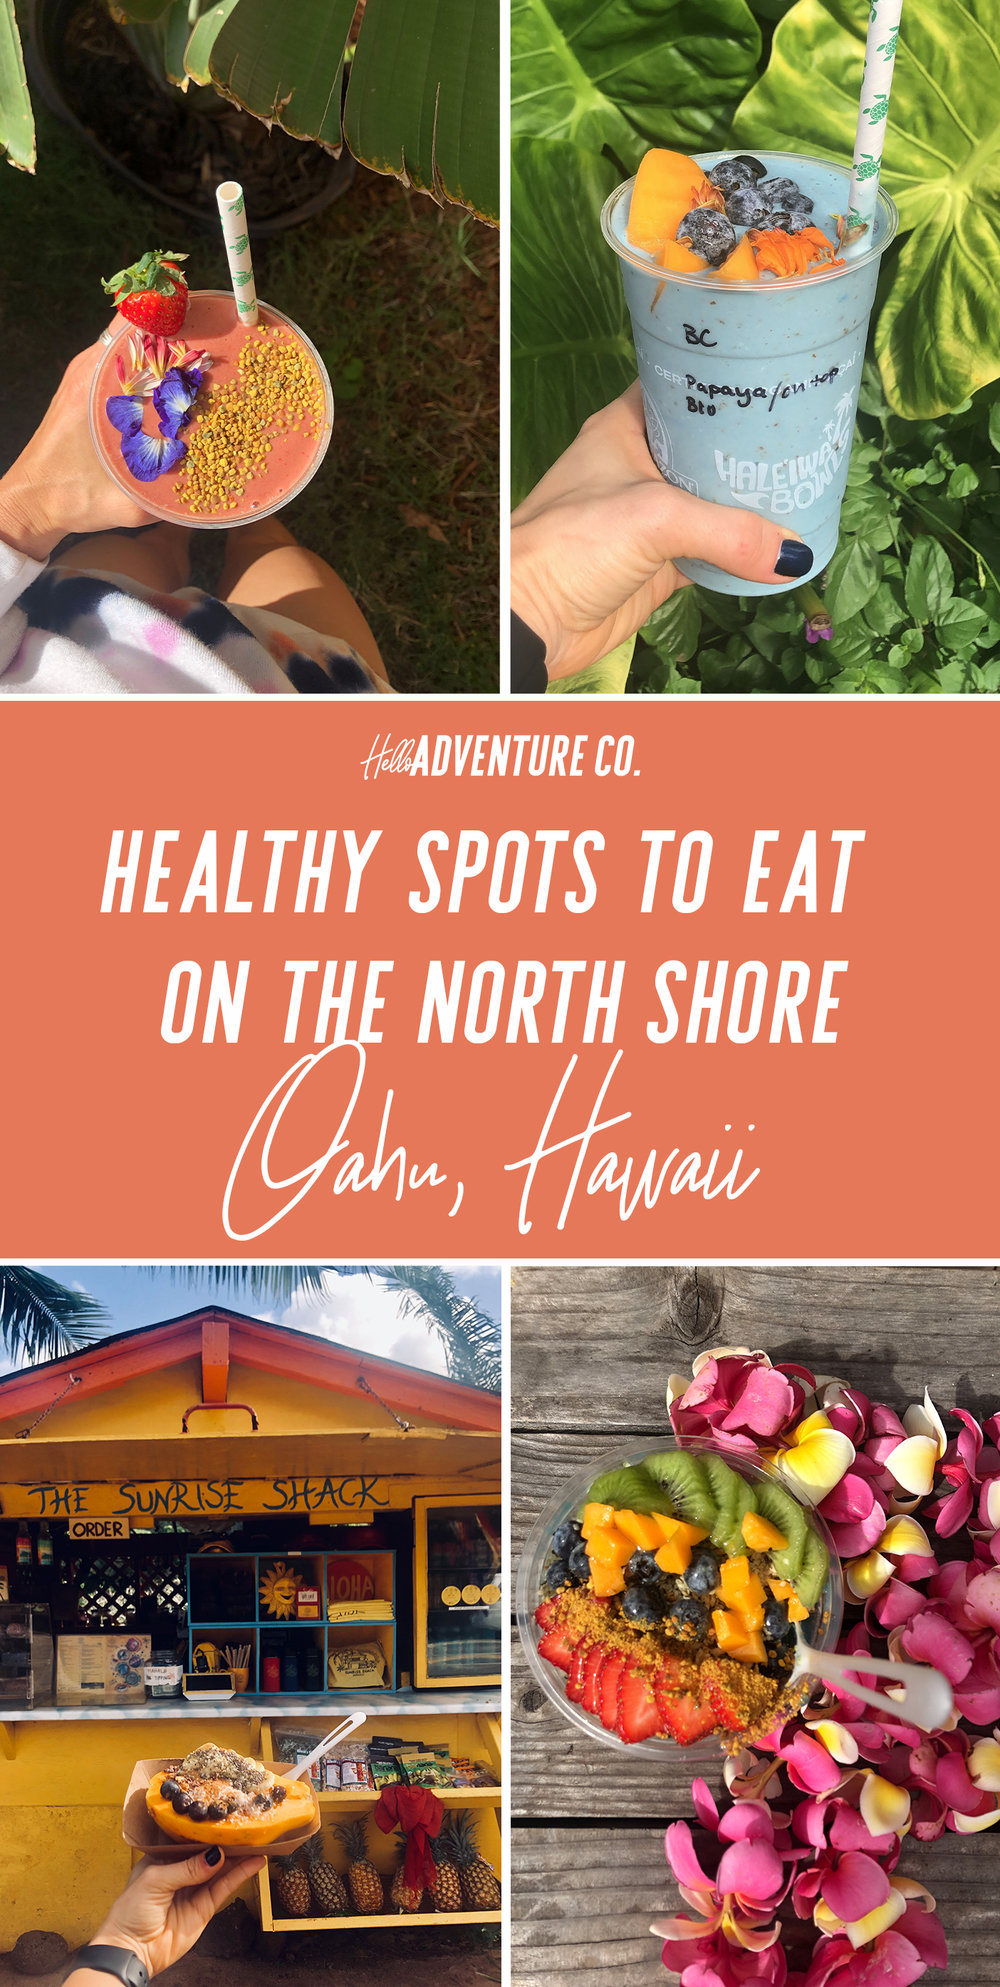 healthy-spots-to-eat-north-shore-oahu-hawaii.jpg